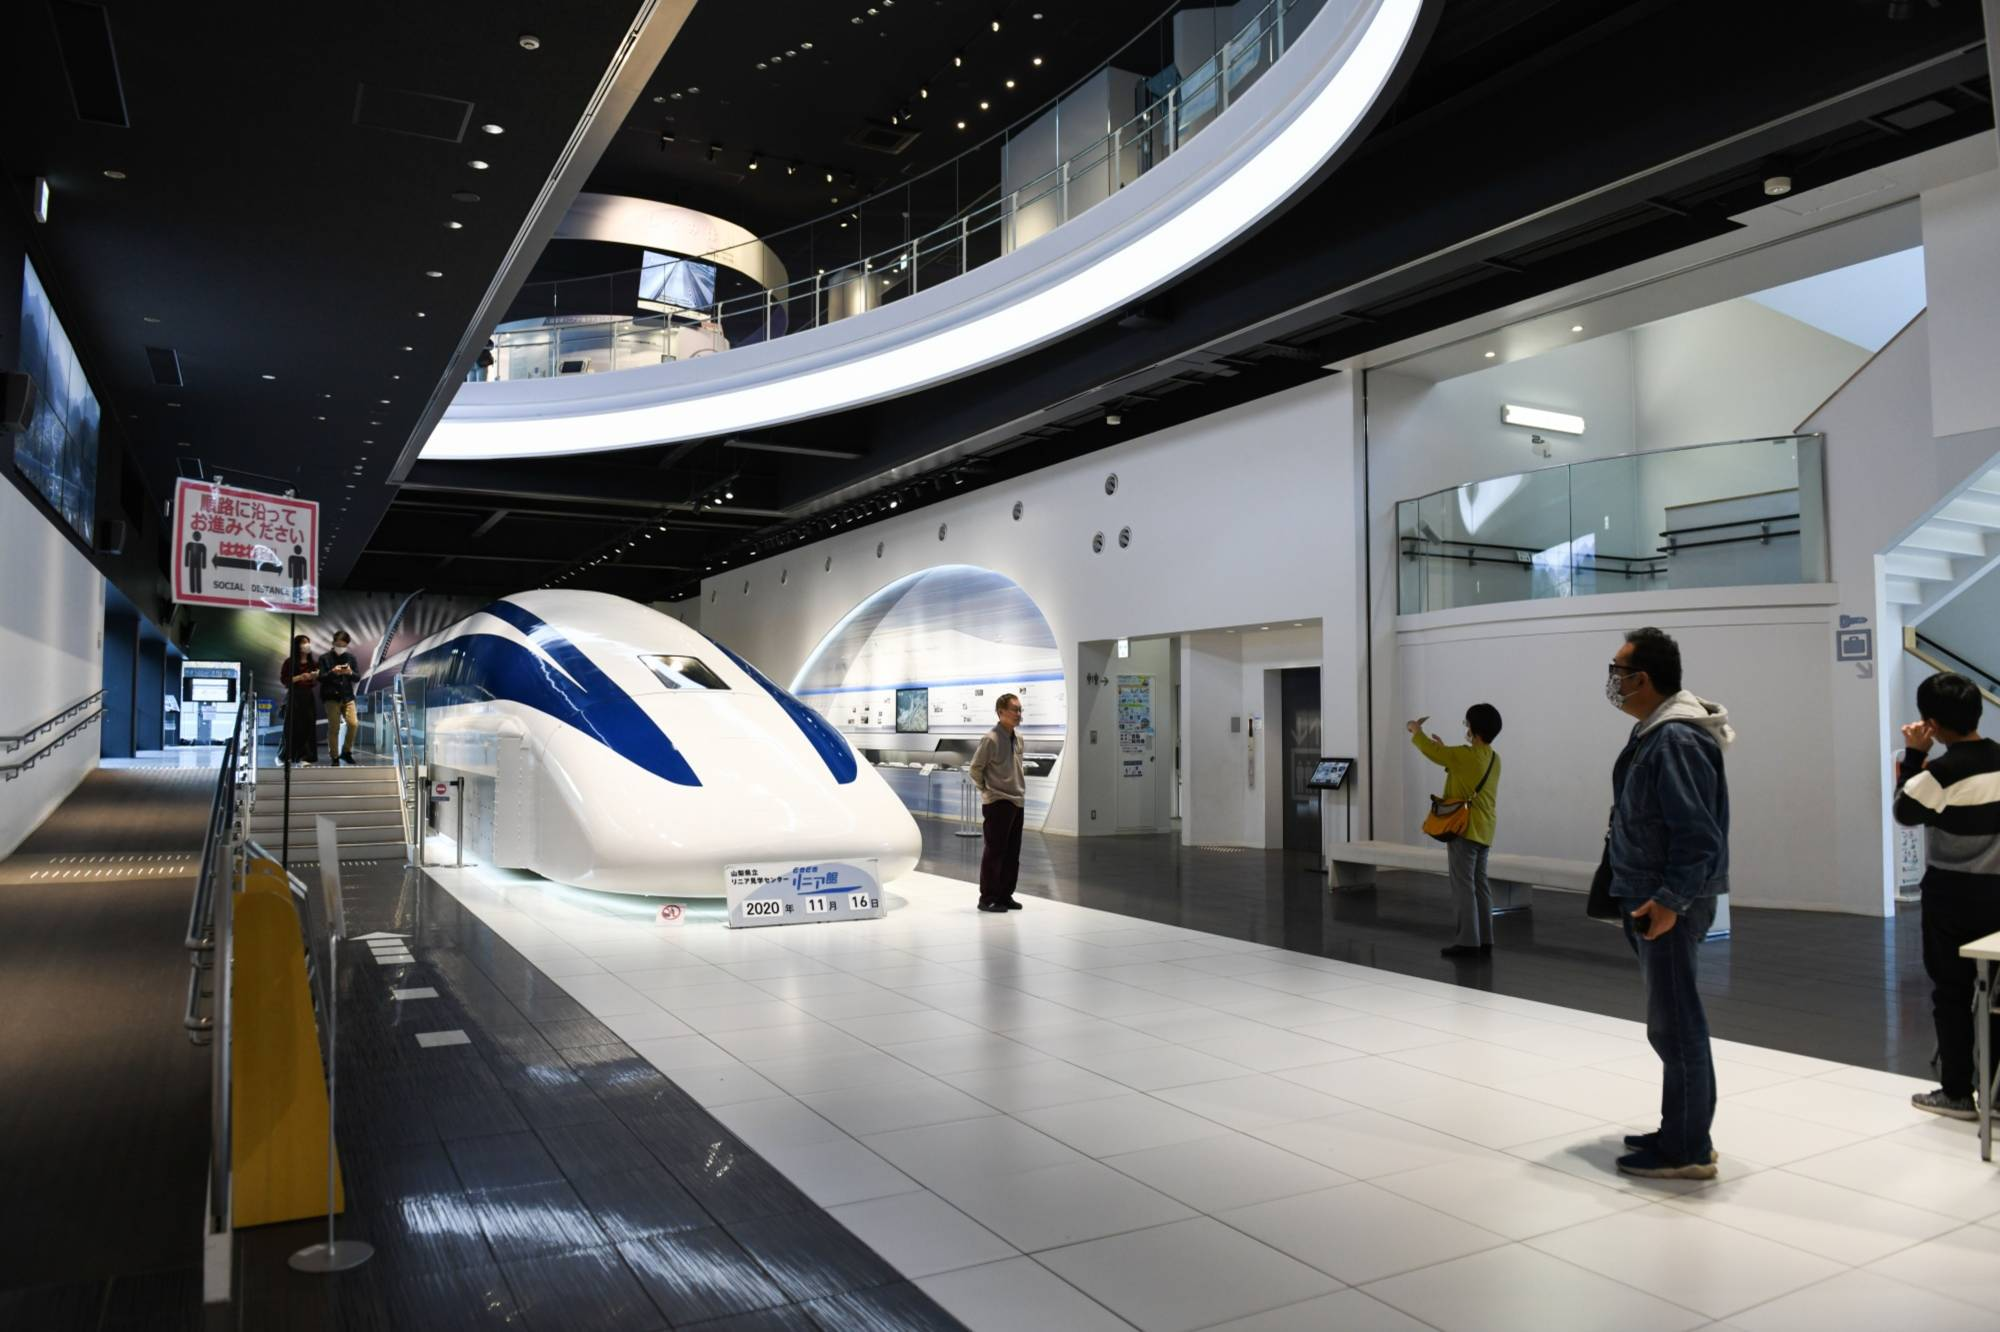 A maglev test vehicle is on display at an exhibition center in Yamanashi Prefecture. | BLOOMBERG